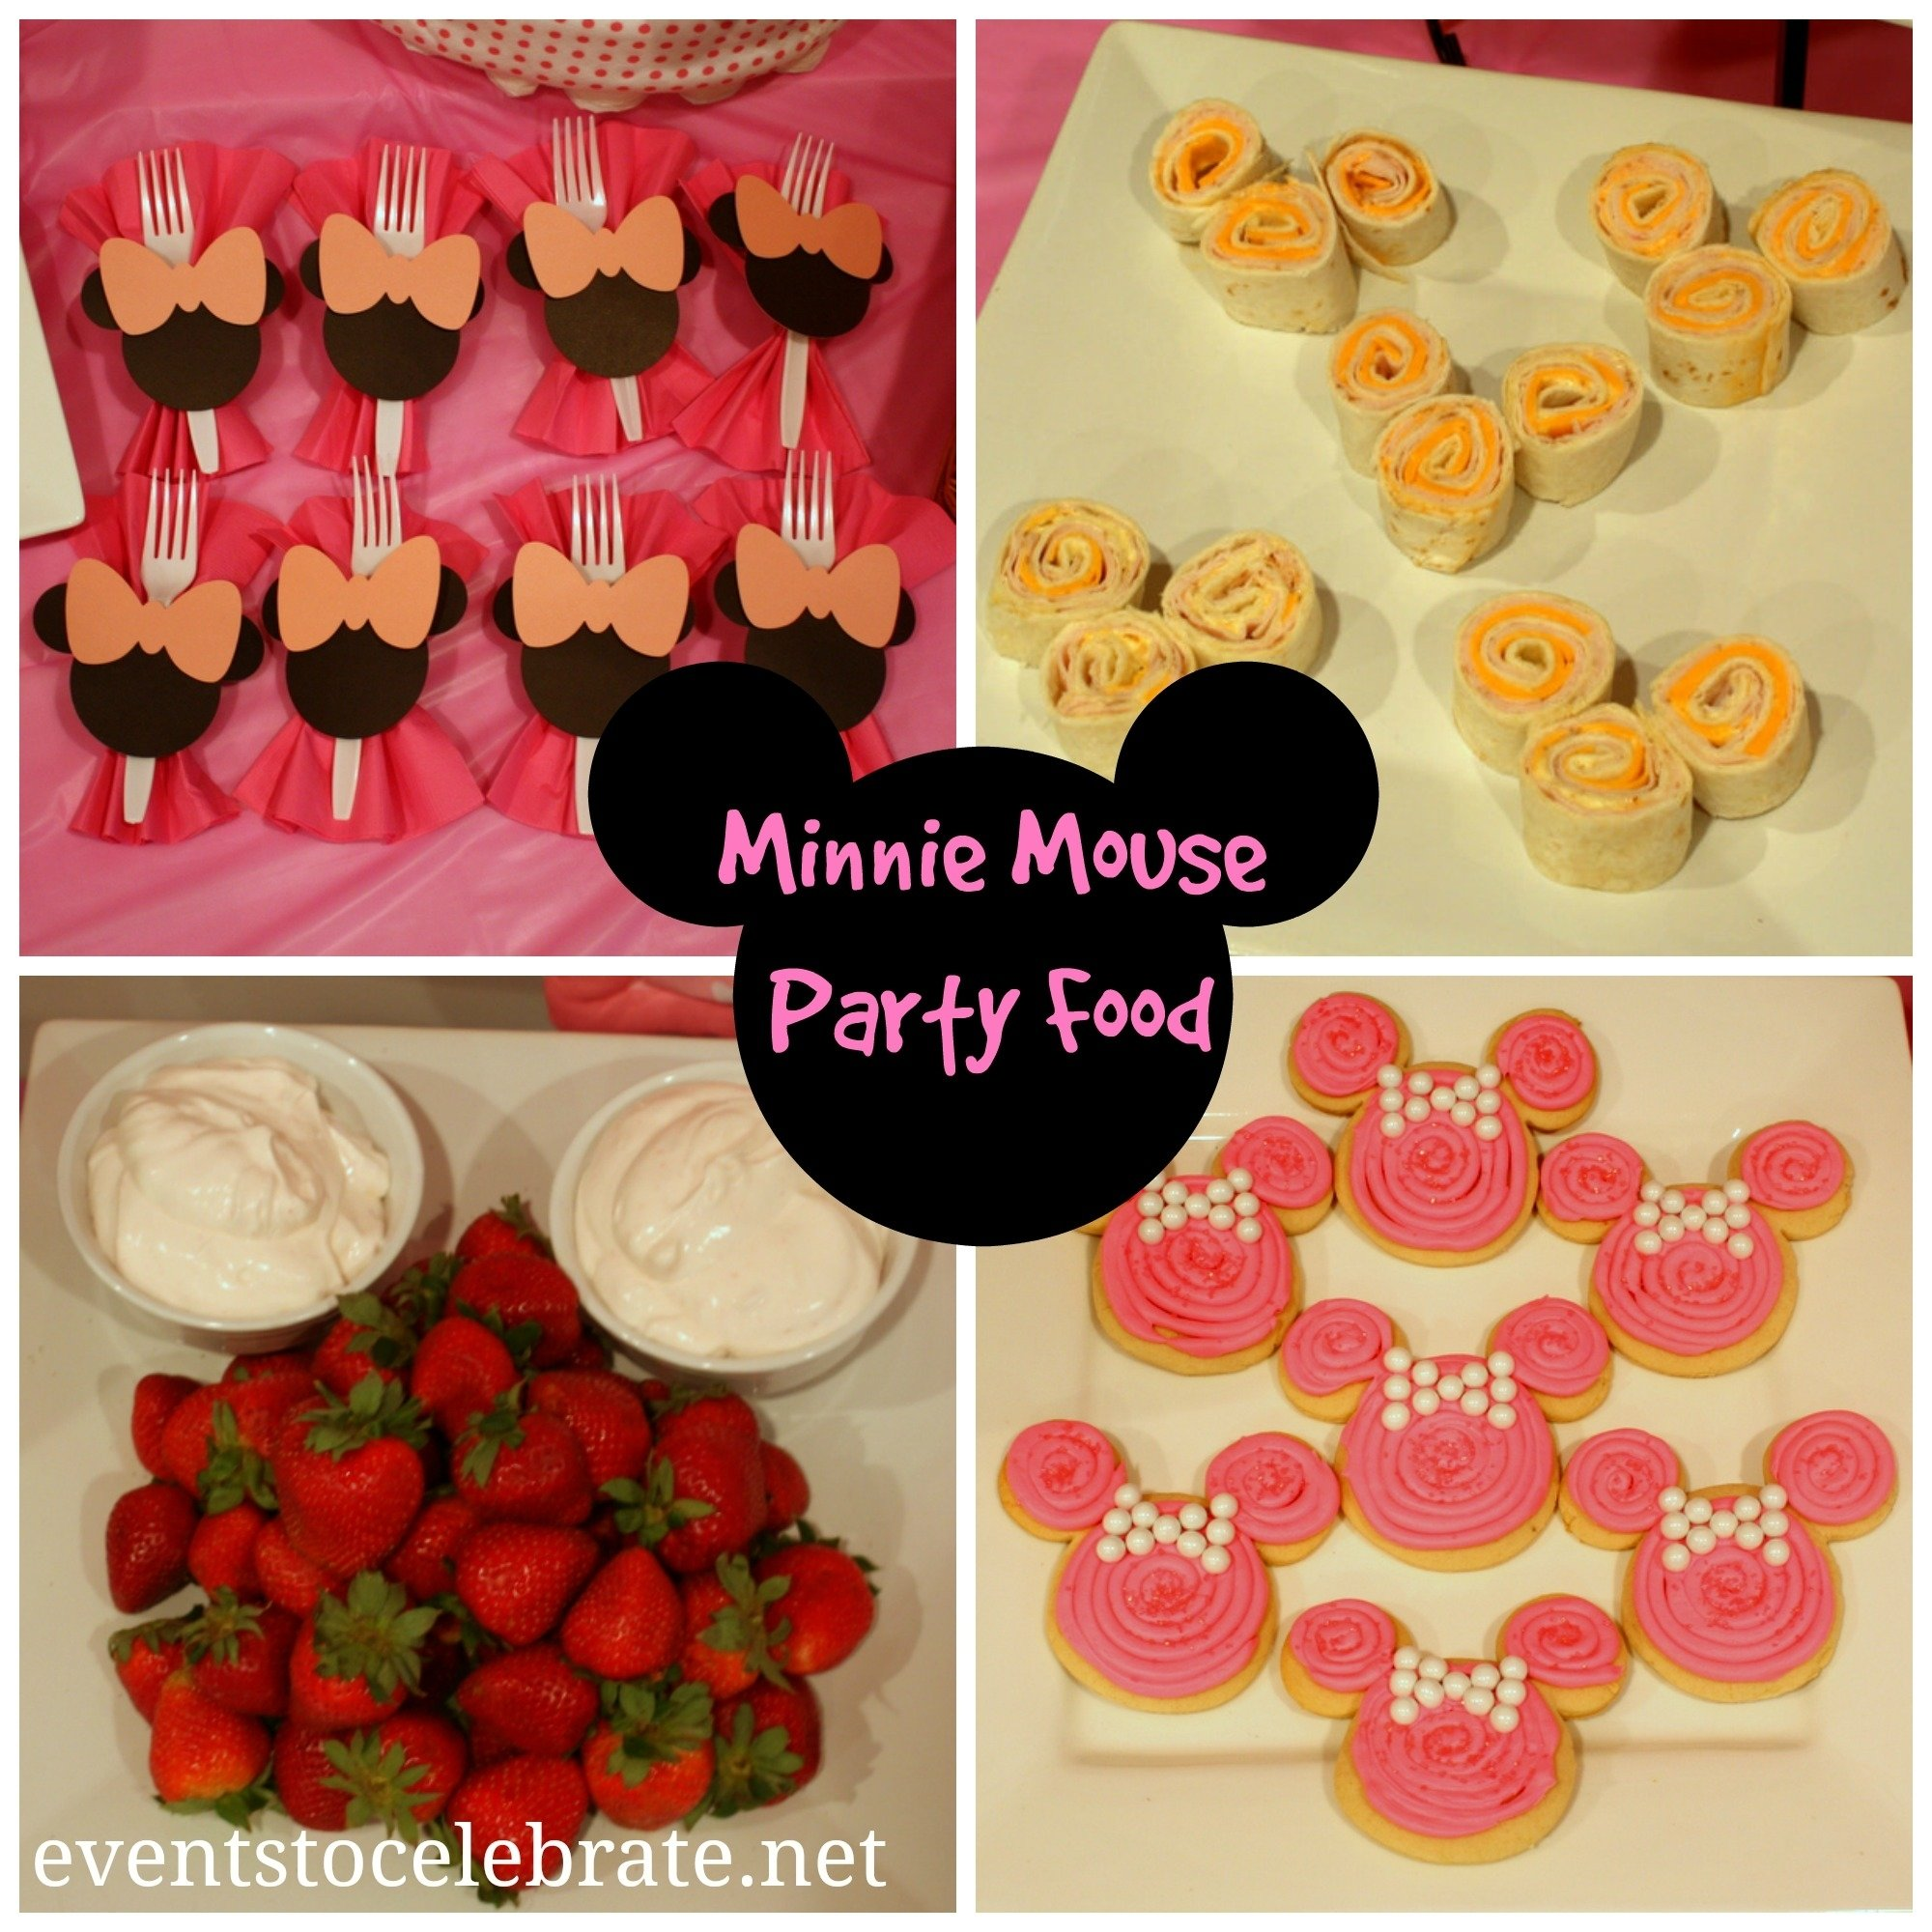 10 Nice Minnie Mouse Party Food Ideas minnie mouse baby shower ideas minnie mouse food ideas and mice 3 2021